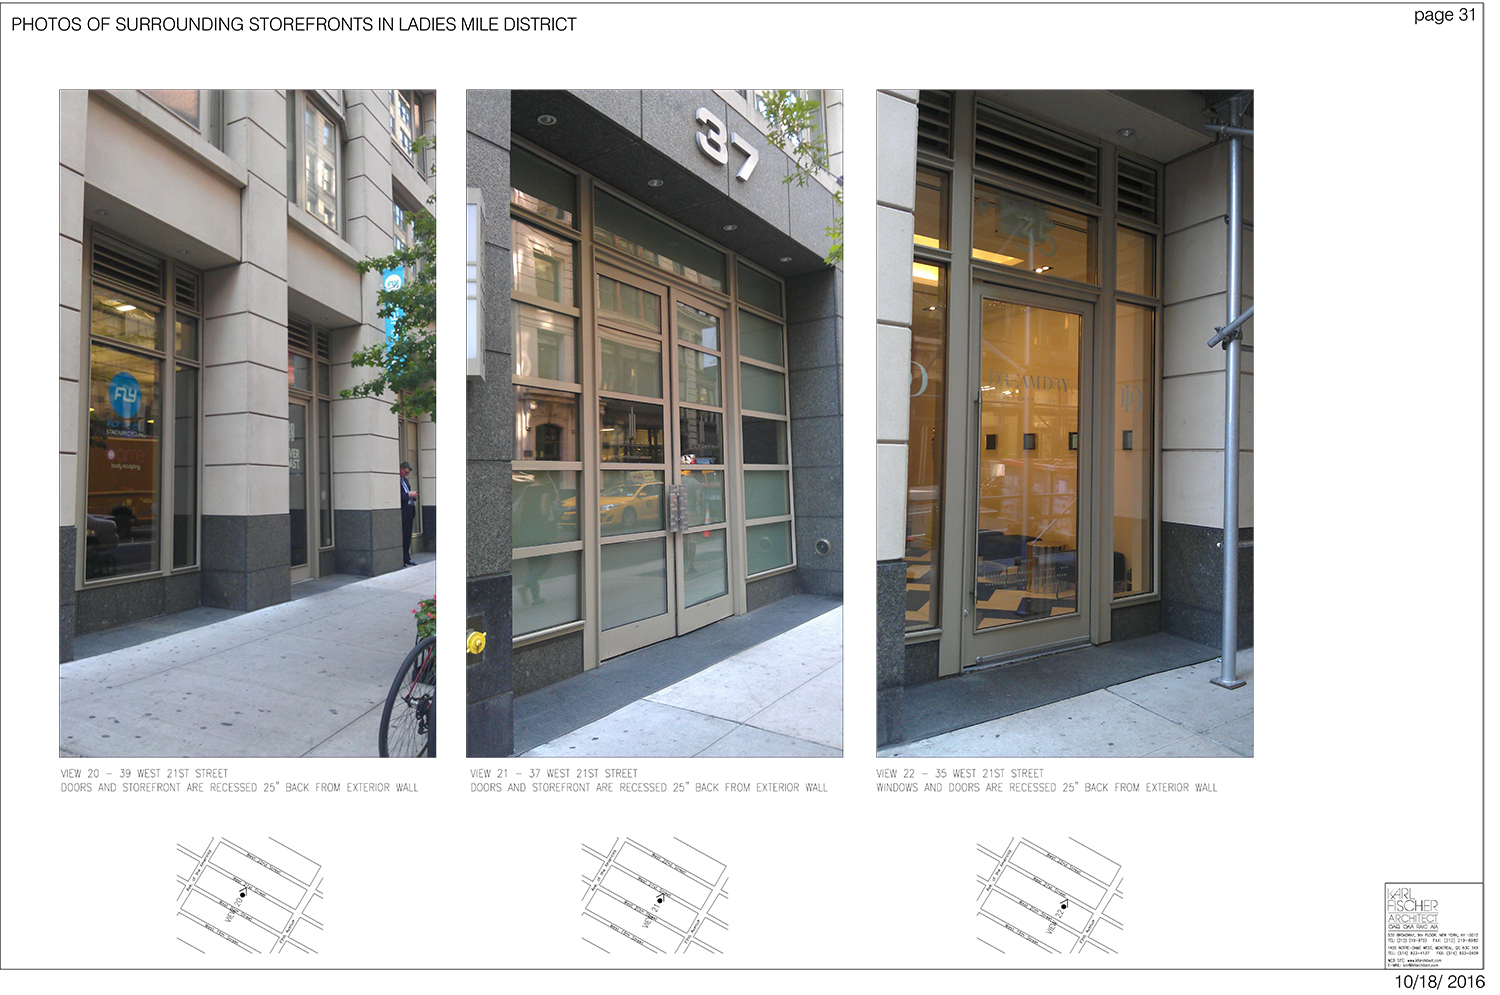 34West21stStreet_20161101_32